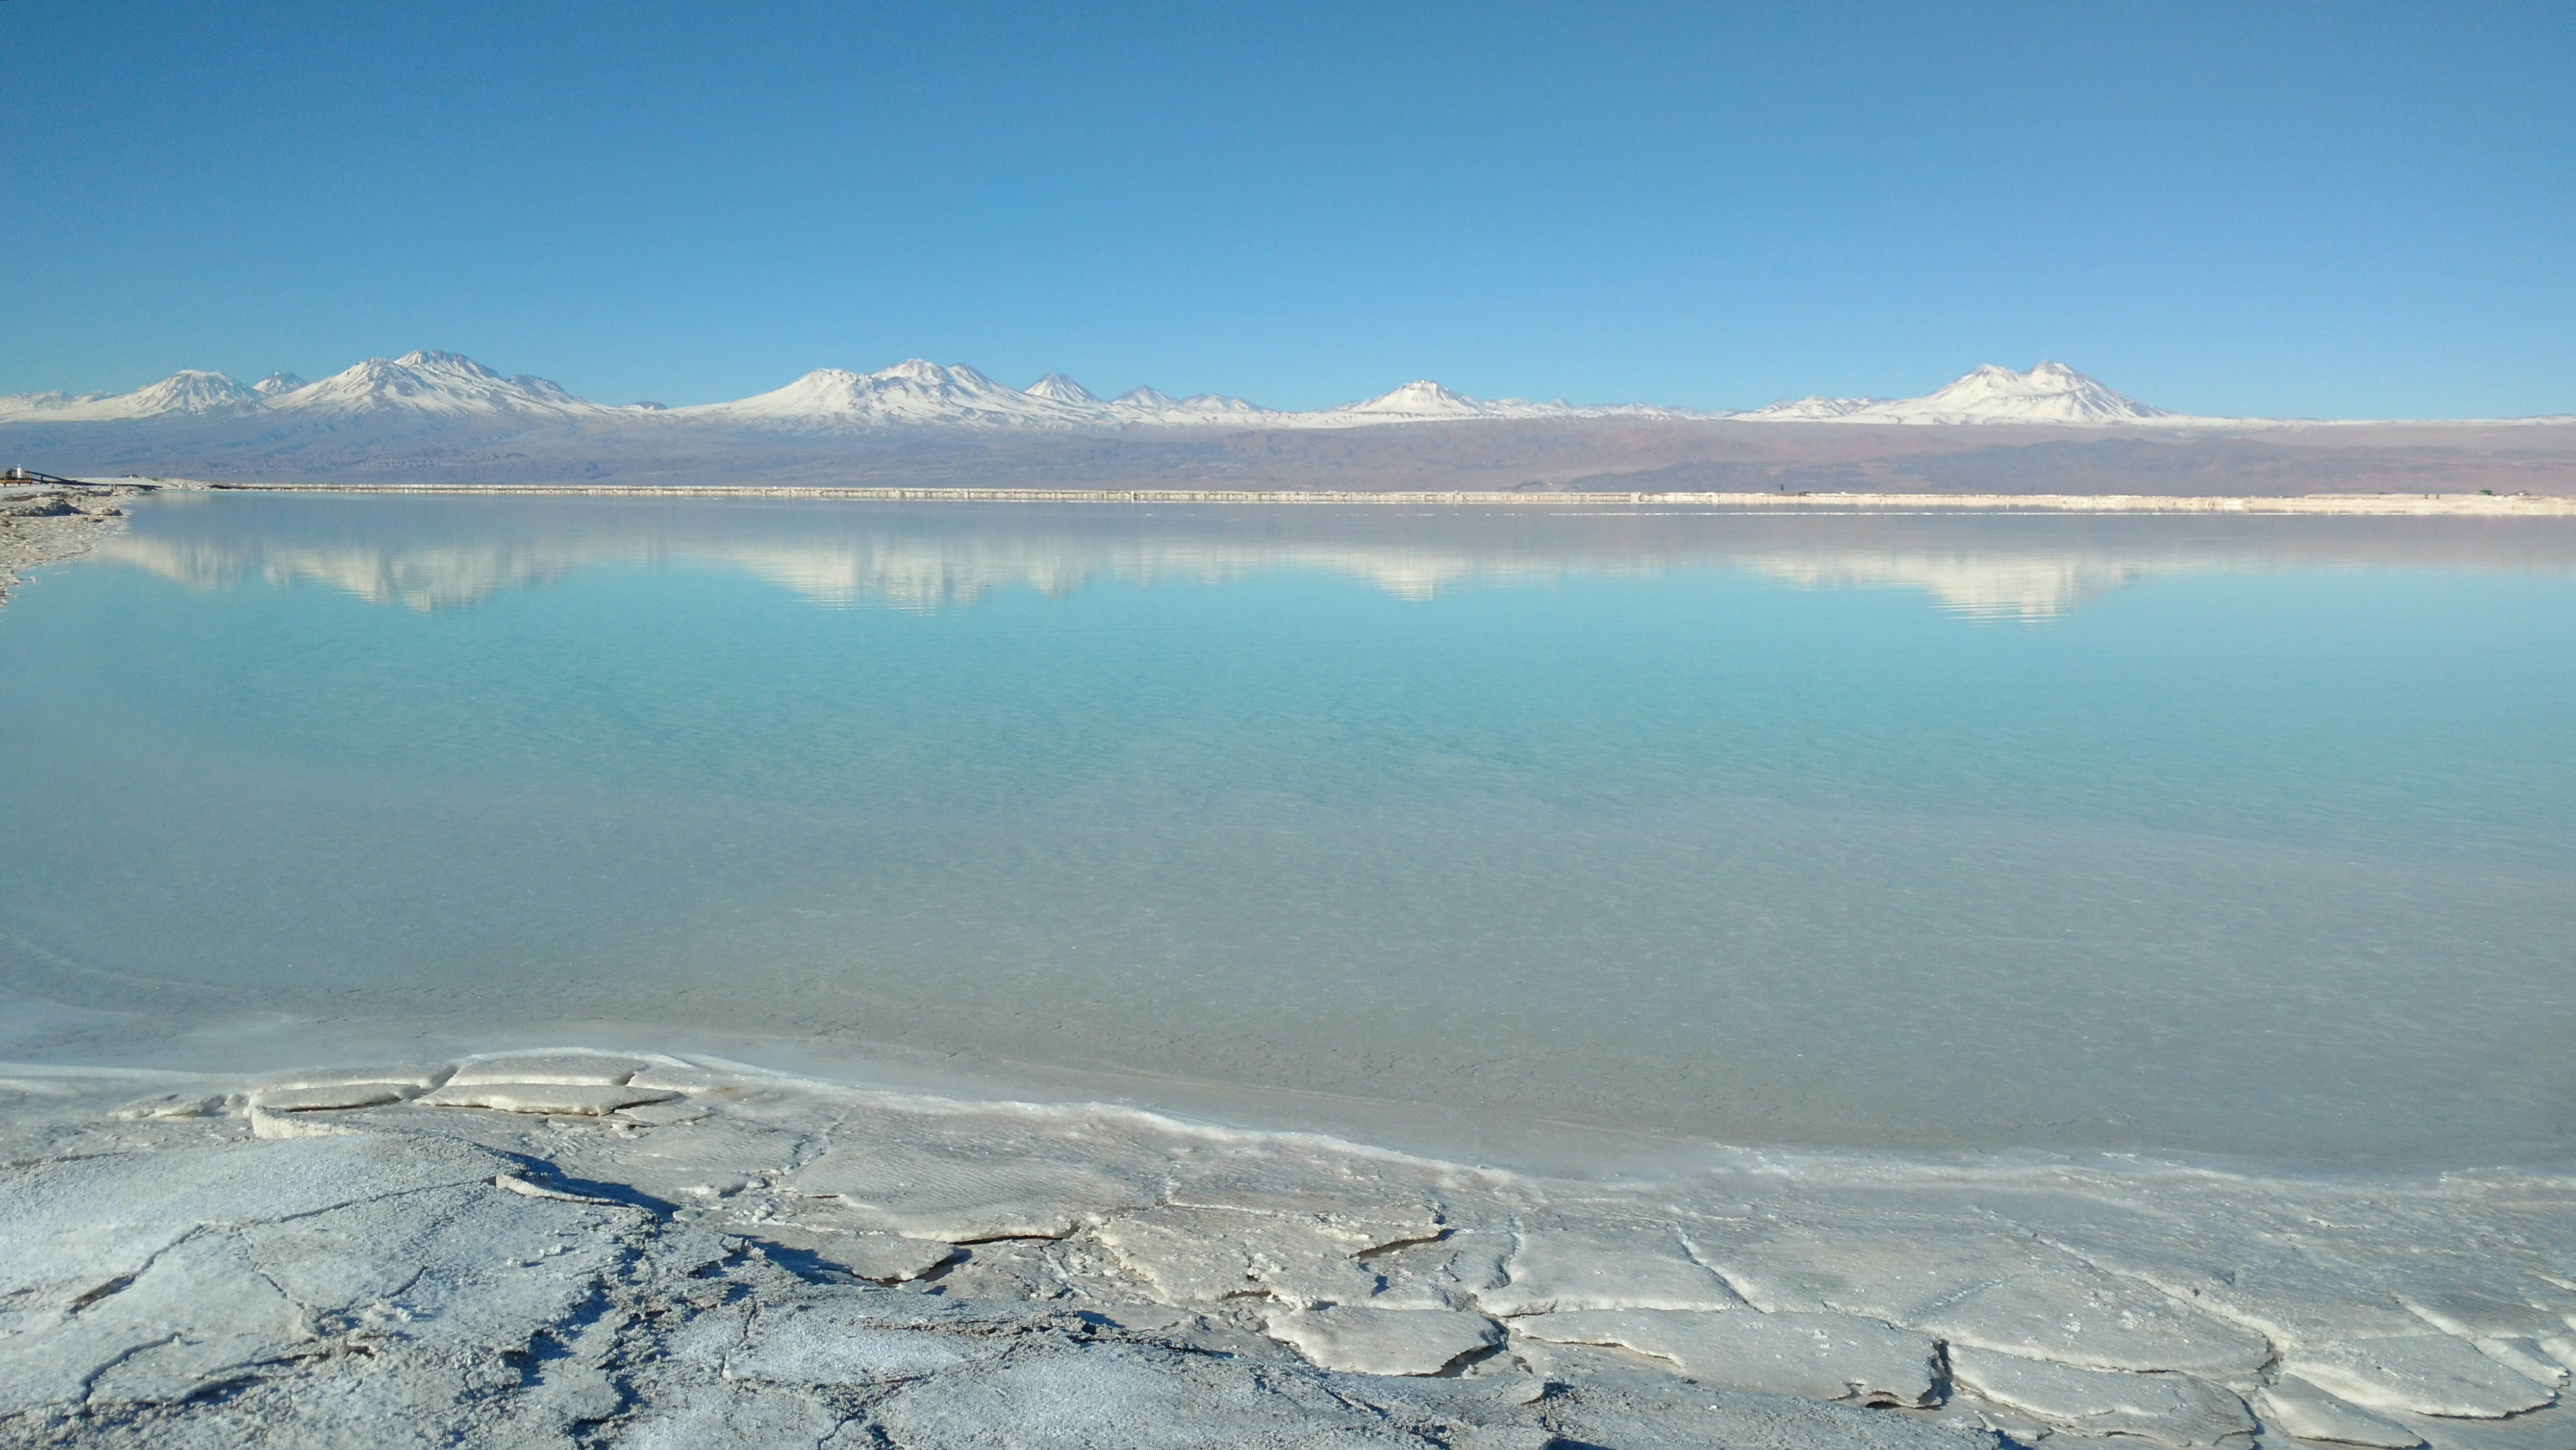 Interpreting Services for Chile's Lithium Industry